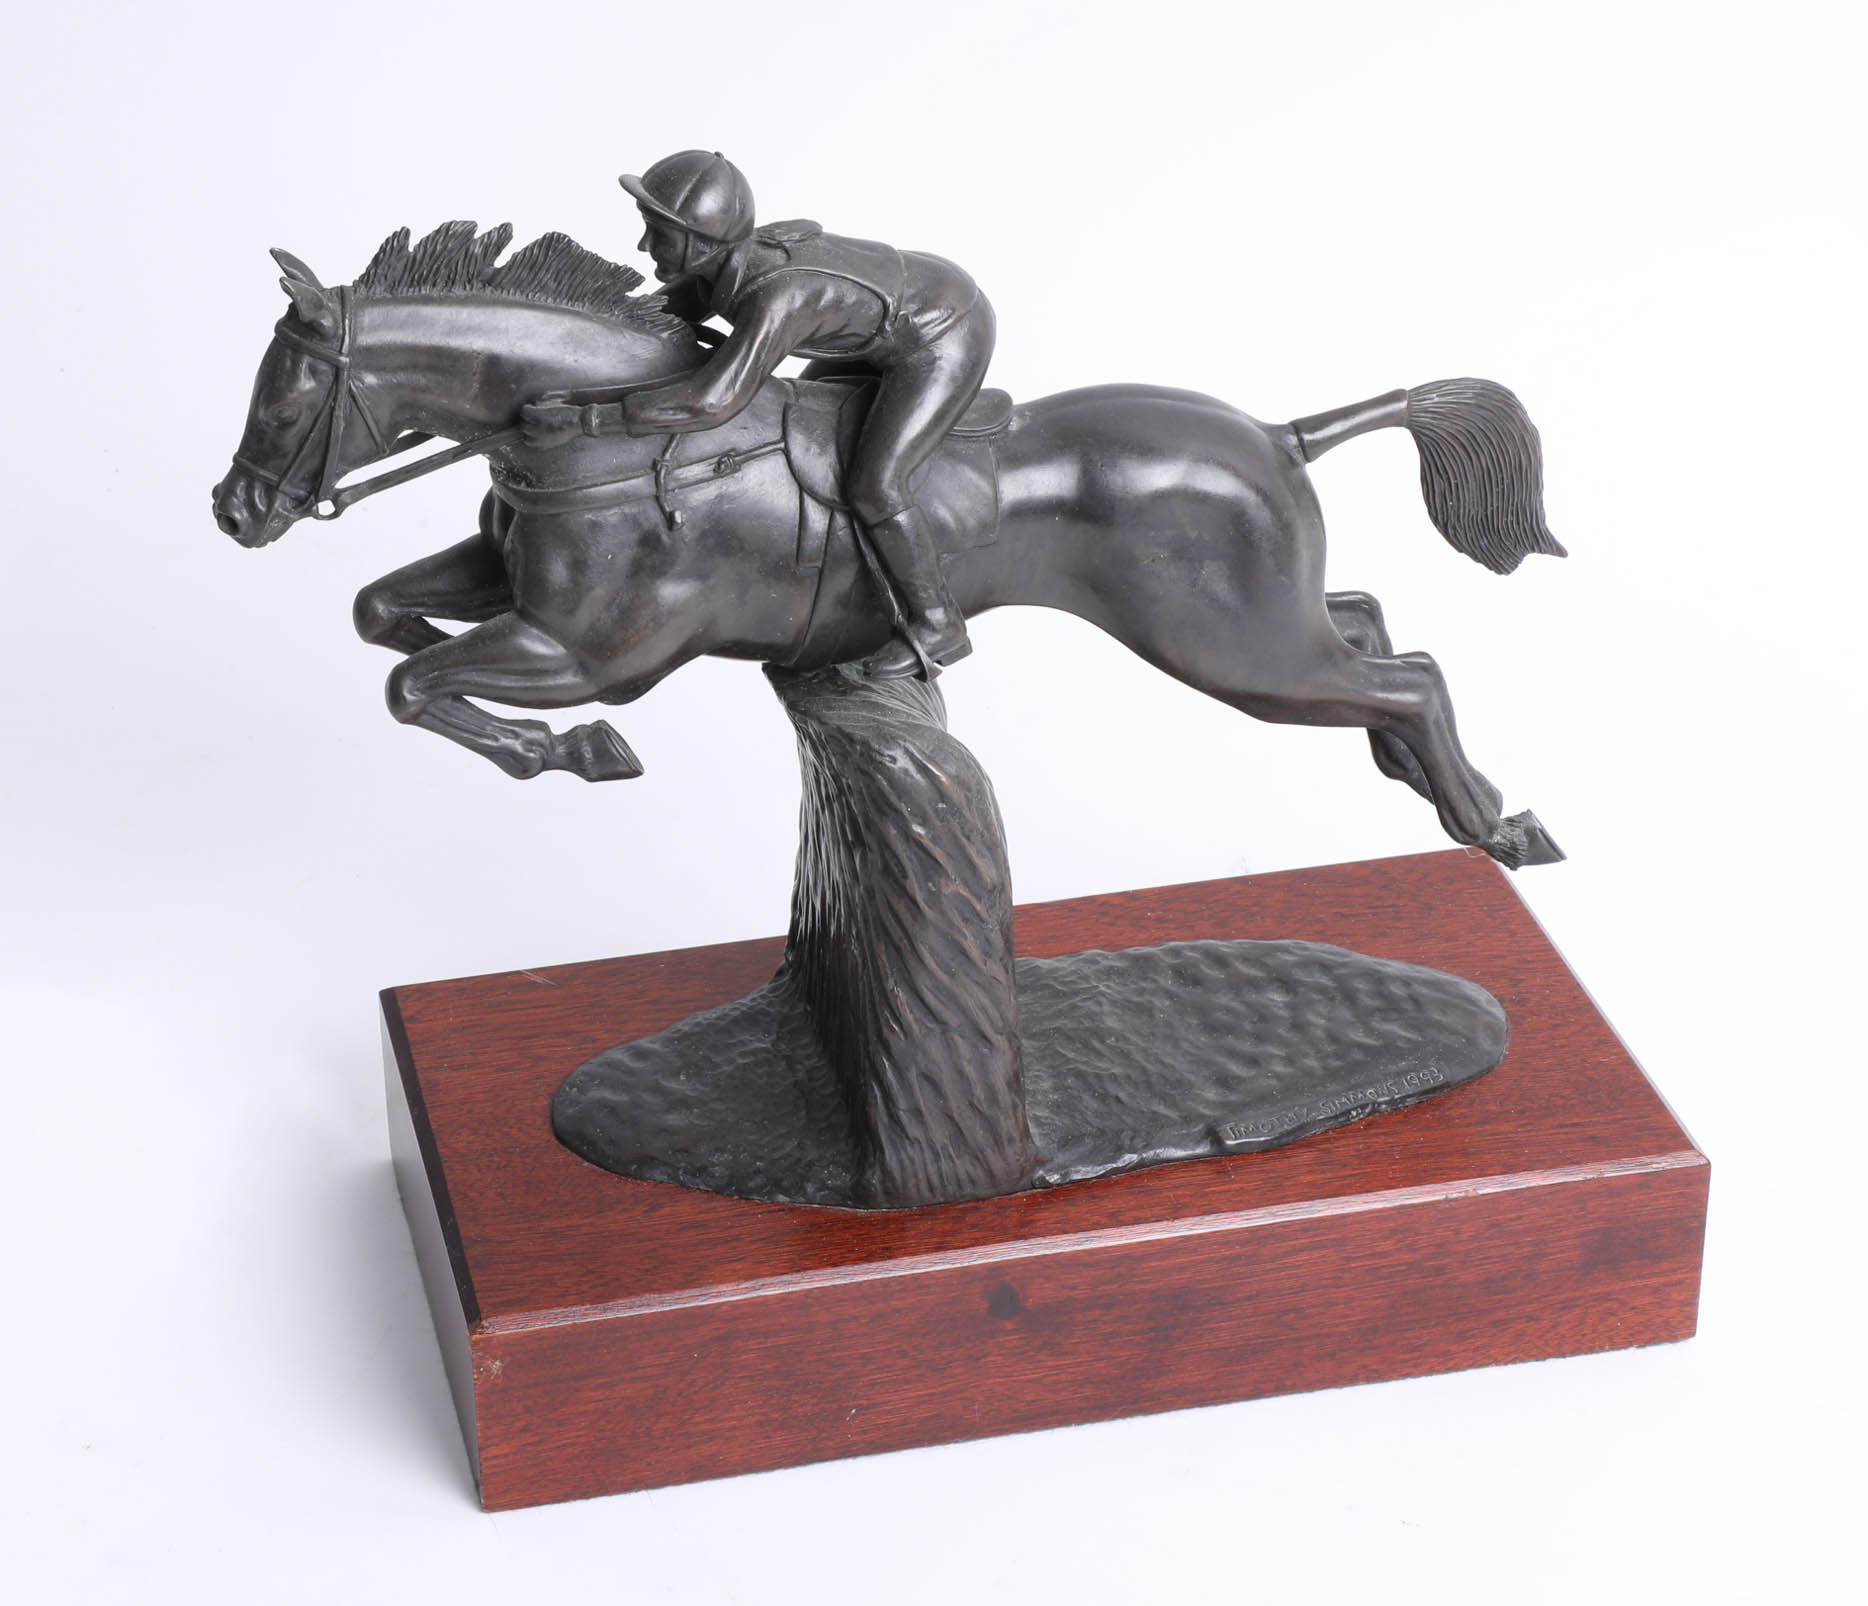 Lot 009 - Timothy Simmons 1993 bronze effect sculpture of jockey on wood plinth total height 28cm.